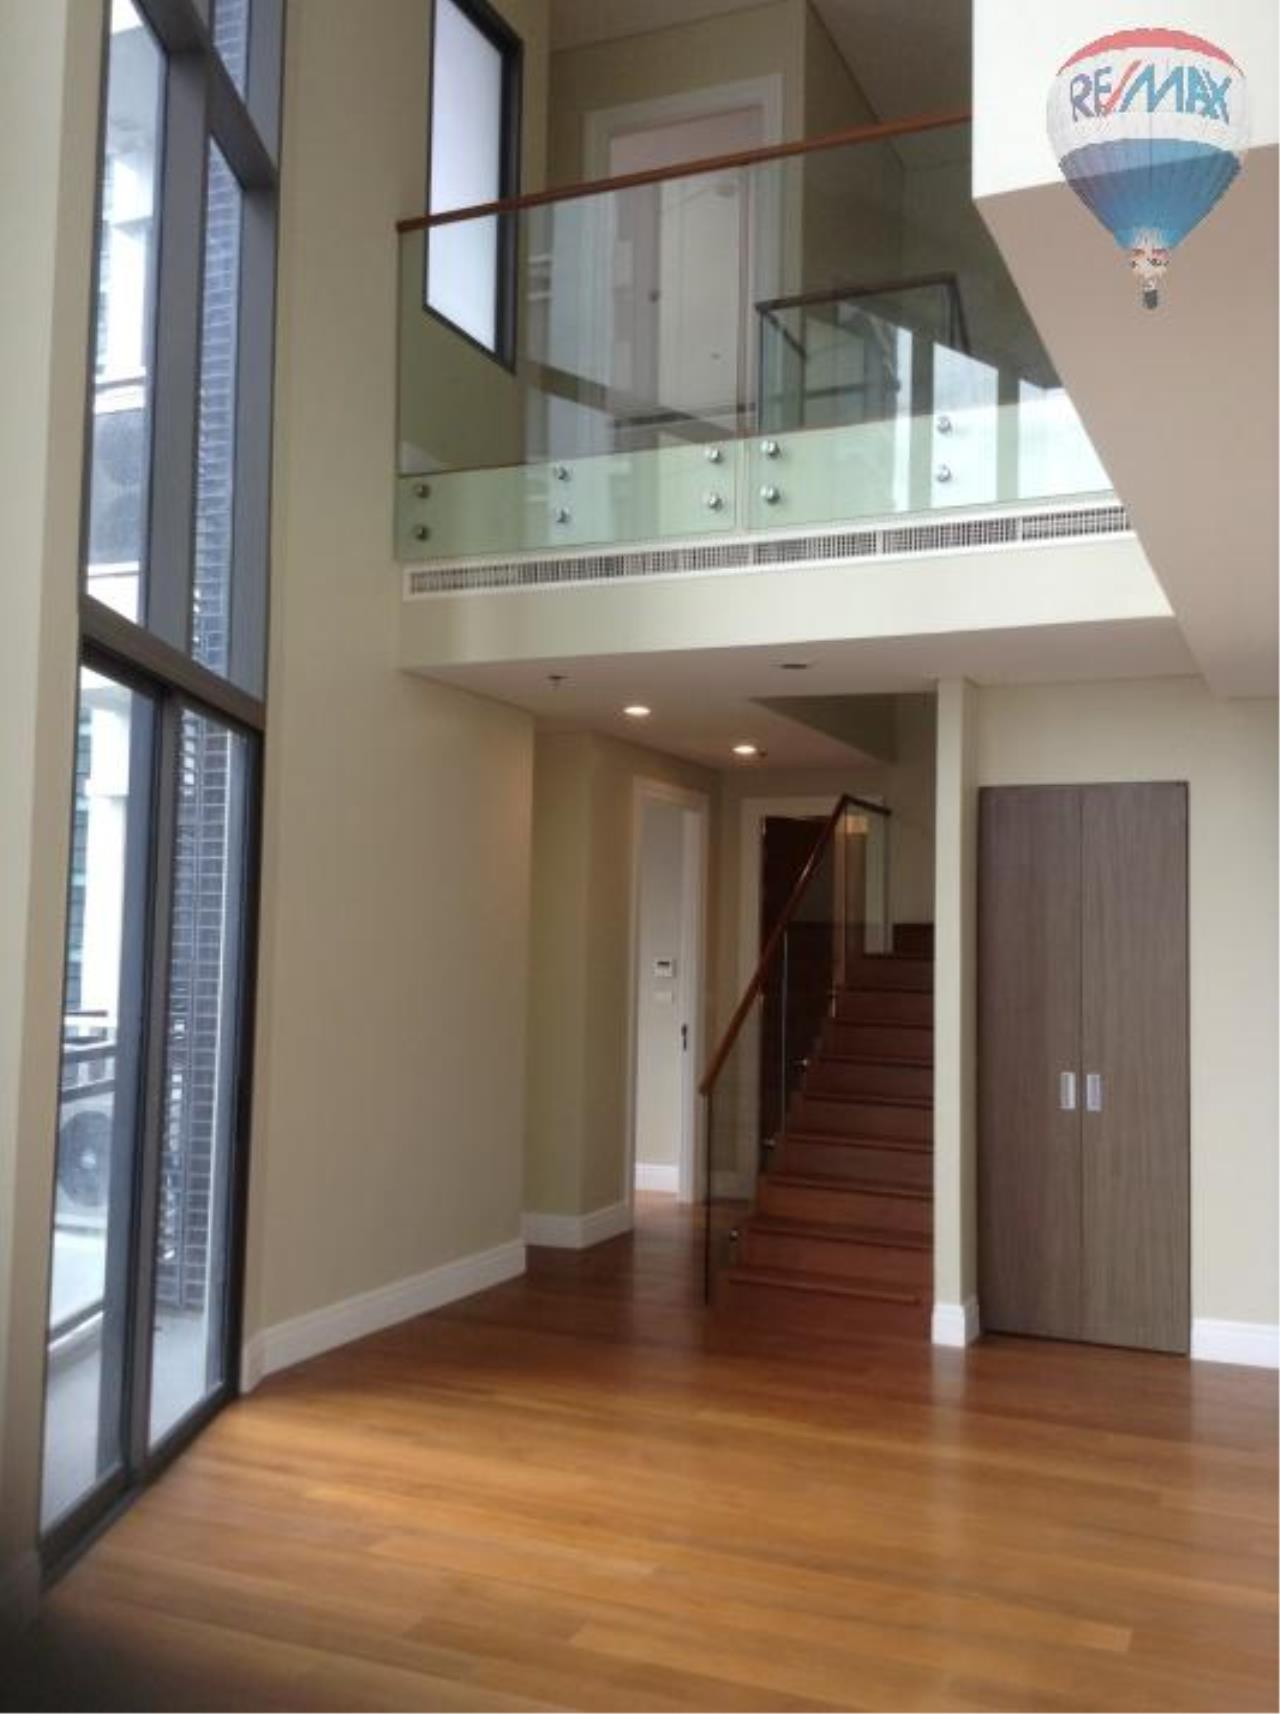 RE/MAX Properties Agency's 6 Bedroom 365 sq.m. for Rent at Bright Sukhumvit 24 30